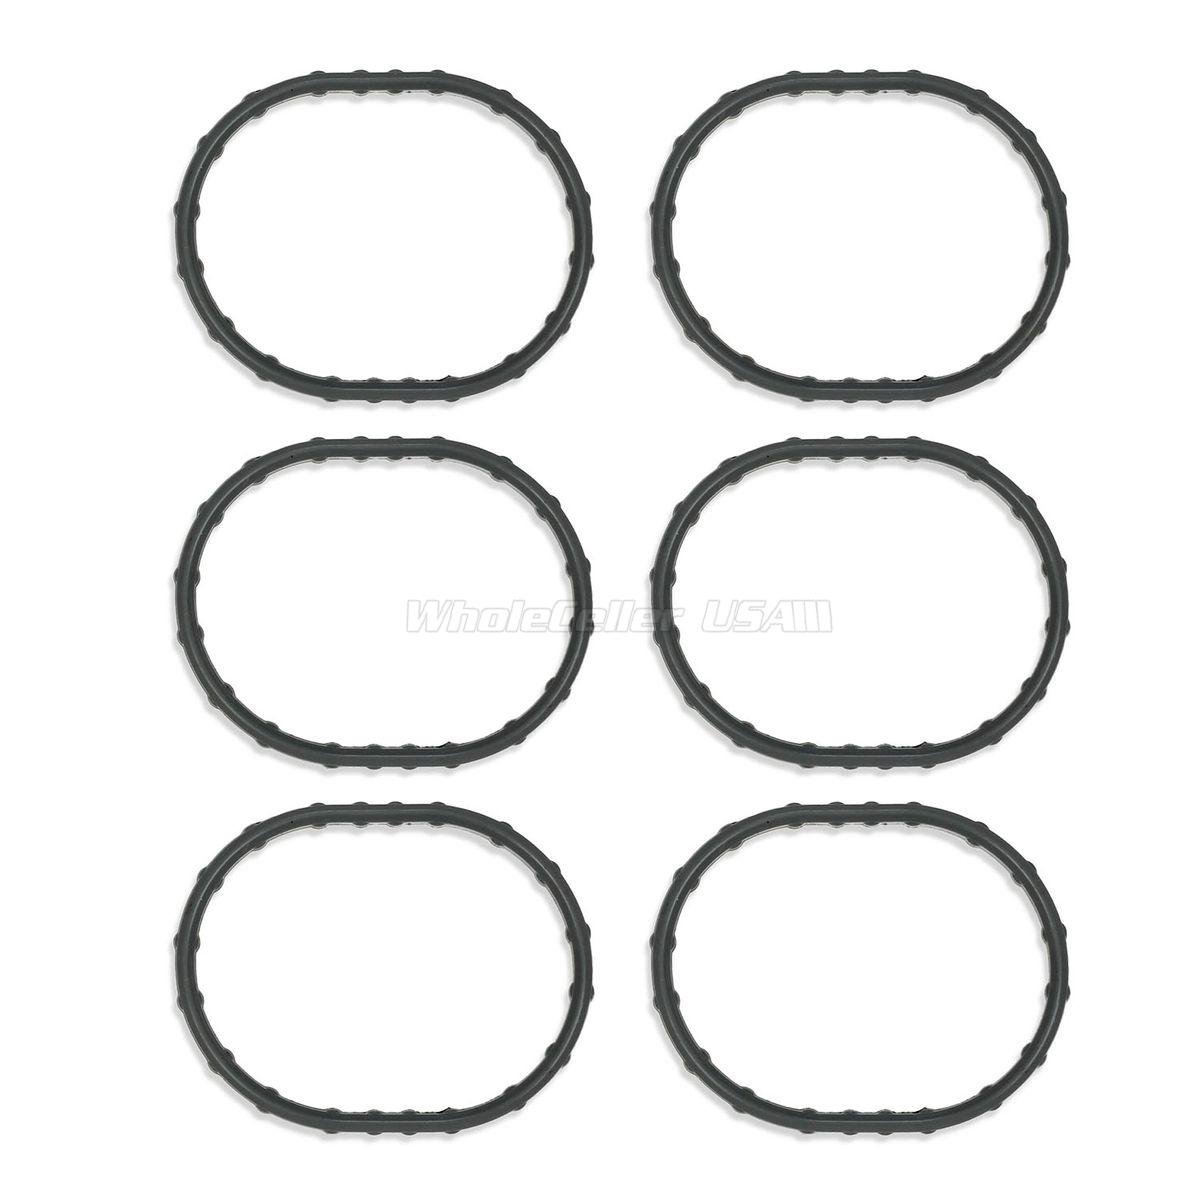 Engine INTAKE MANIFOLD GASKETS Fits 01-04 FORD EXPLORER